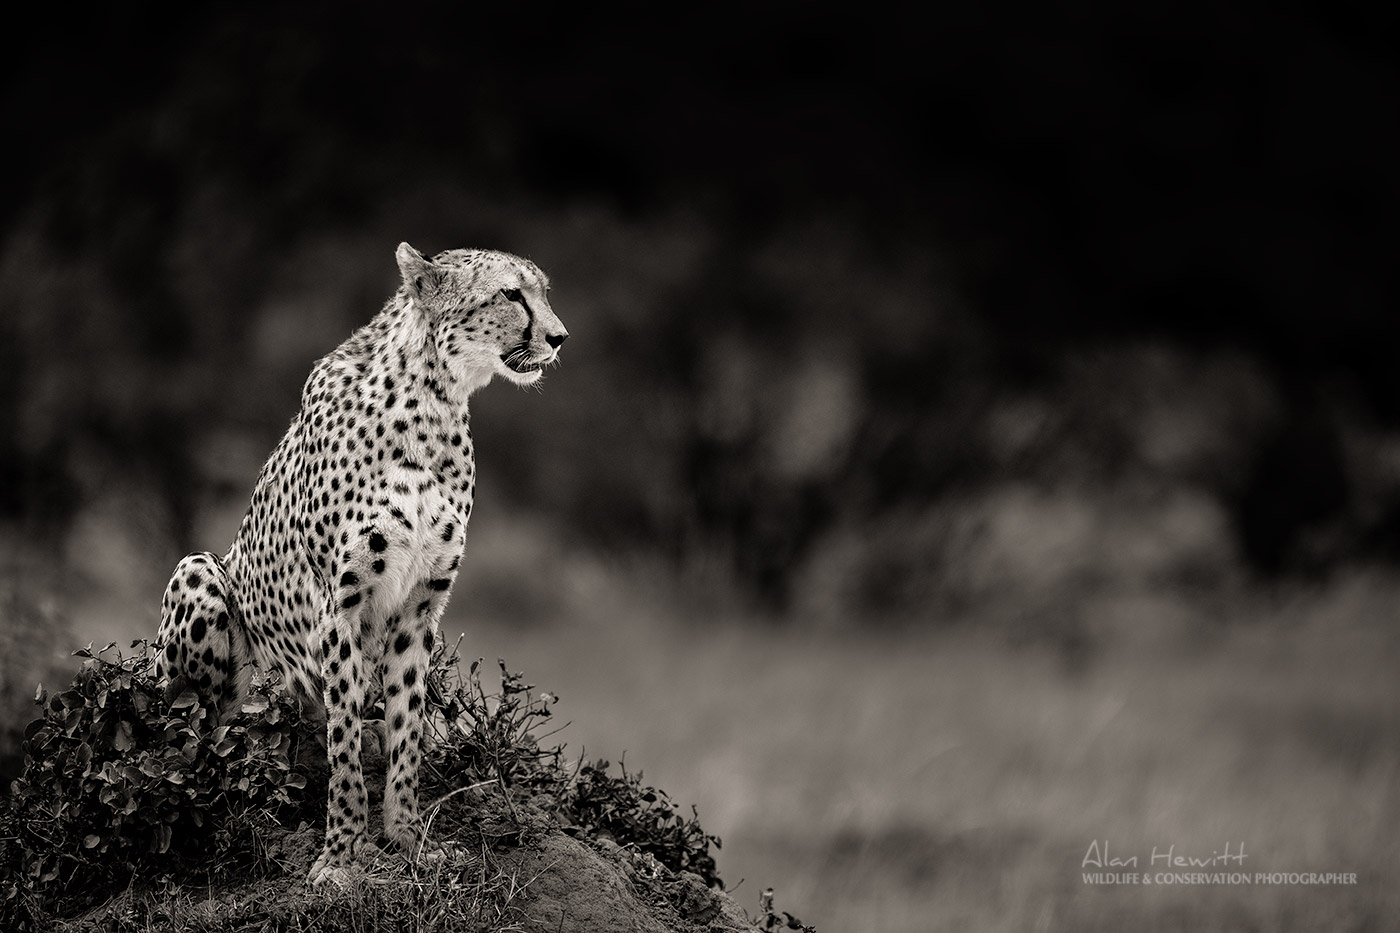 Northern Photography Collective, Alan Hewitt - Cheetah